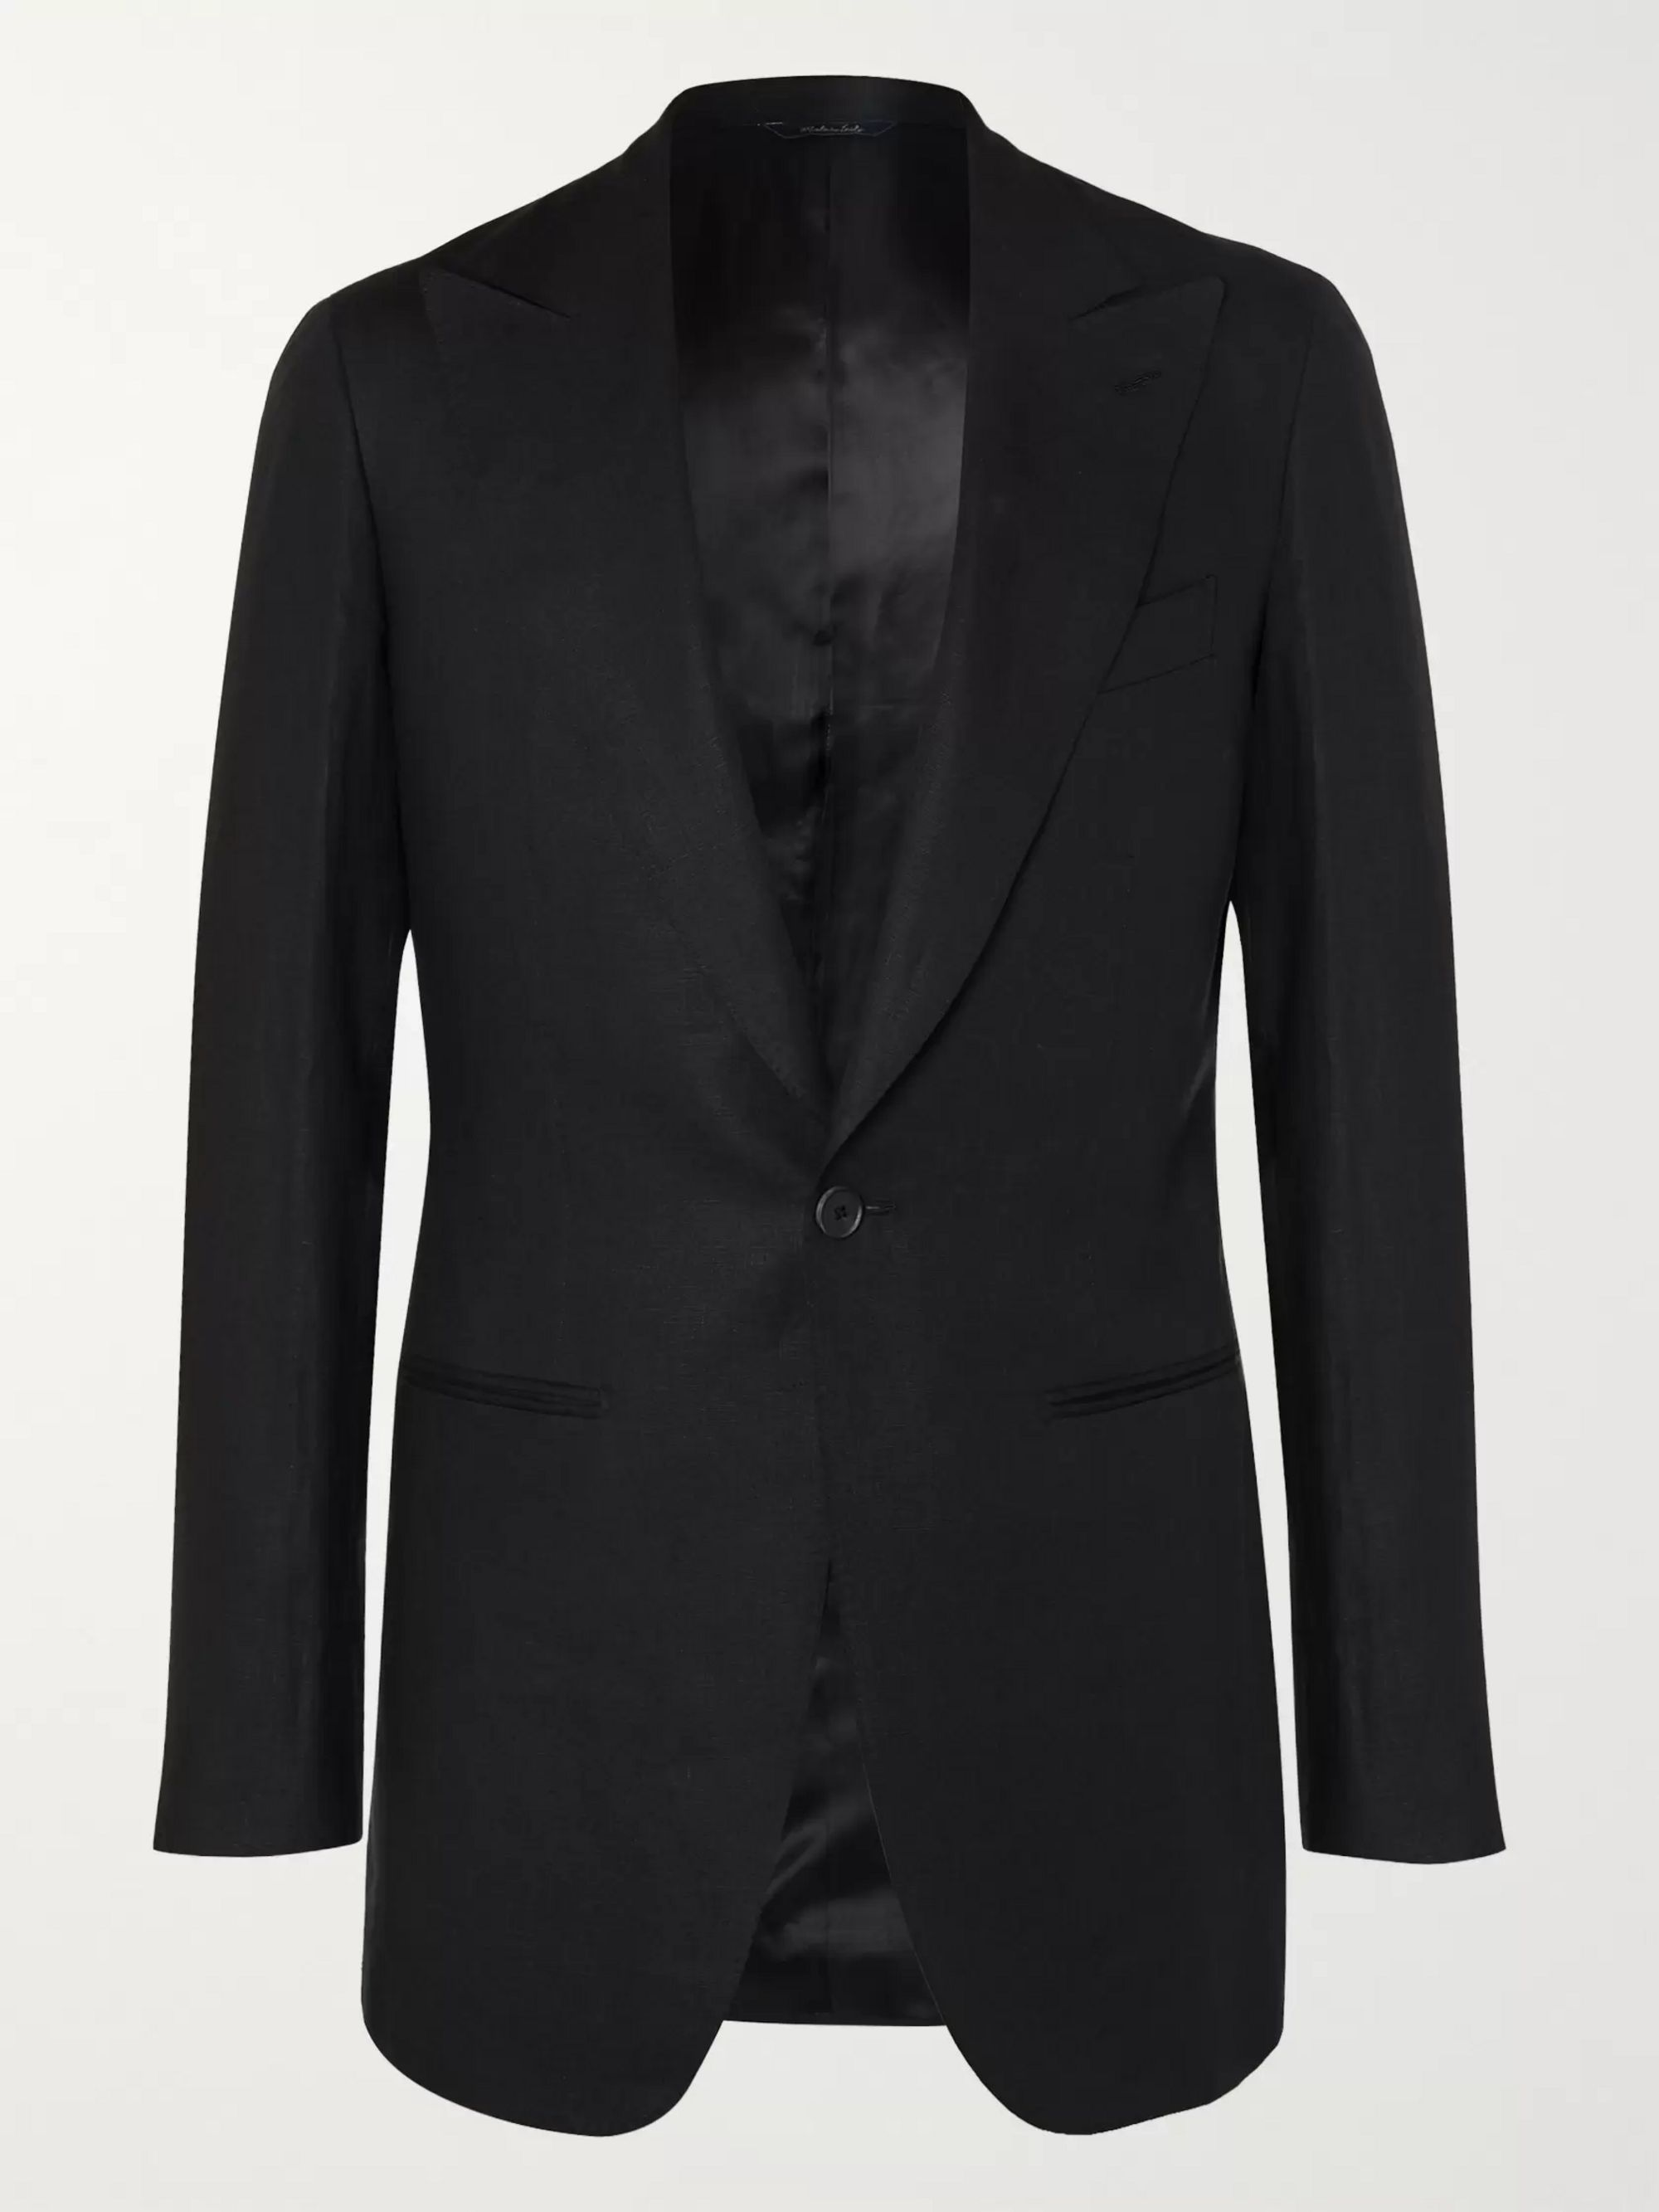 SAMAN AMEL Black Linen Suit Jacket